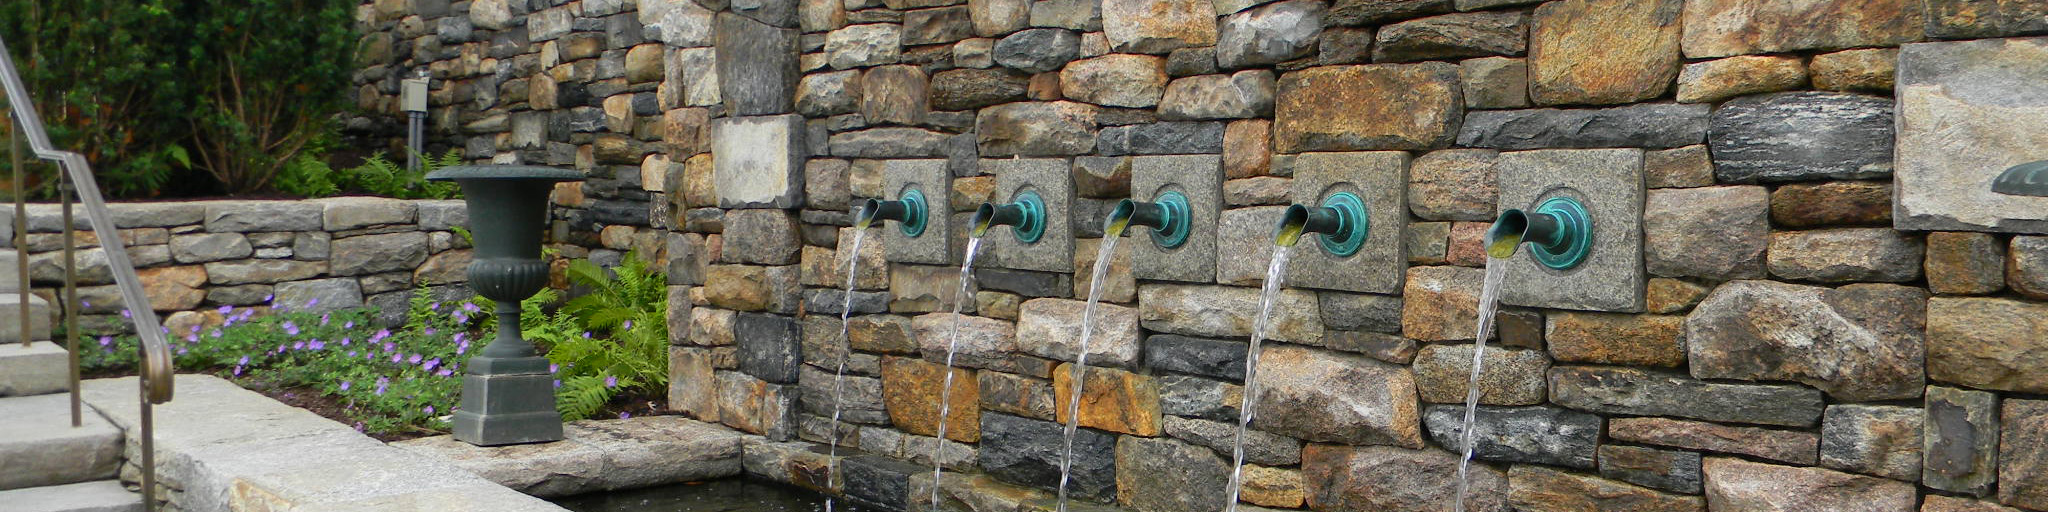 Decoarative fountain with bronze spouts on stone wall